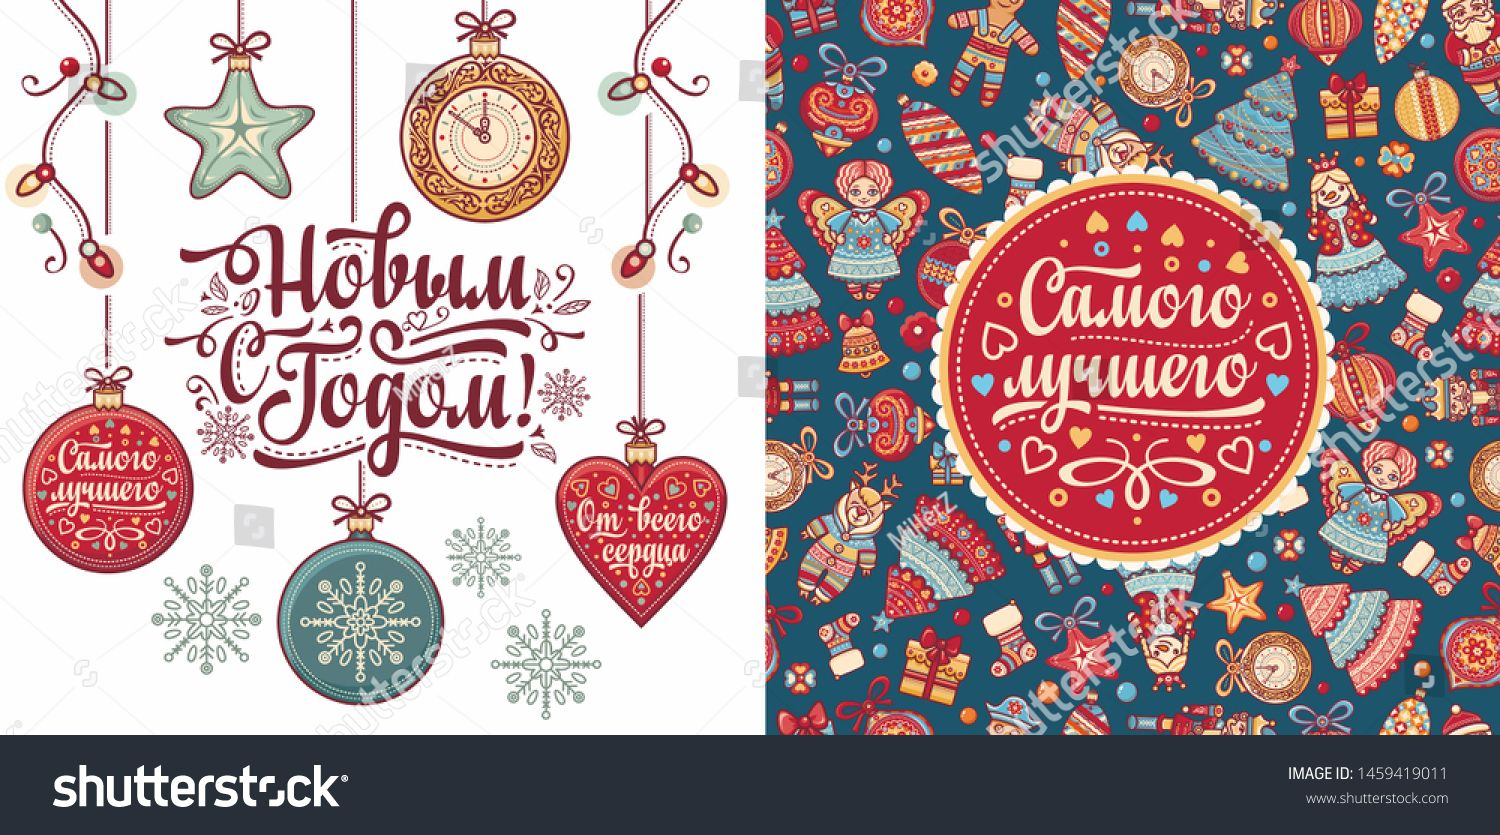 Happy New Year Russian Holiday Cyrillic Font Santa Bells Christmas On Colorful Happy Holiday Greeting Cards Abstract Geometric Pattern Vintage Wallpaper